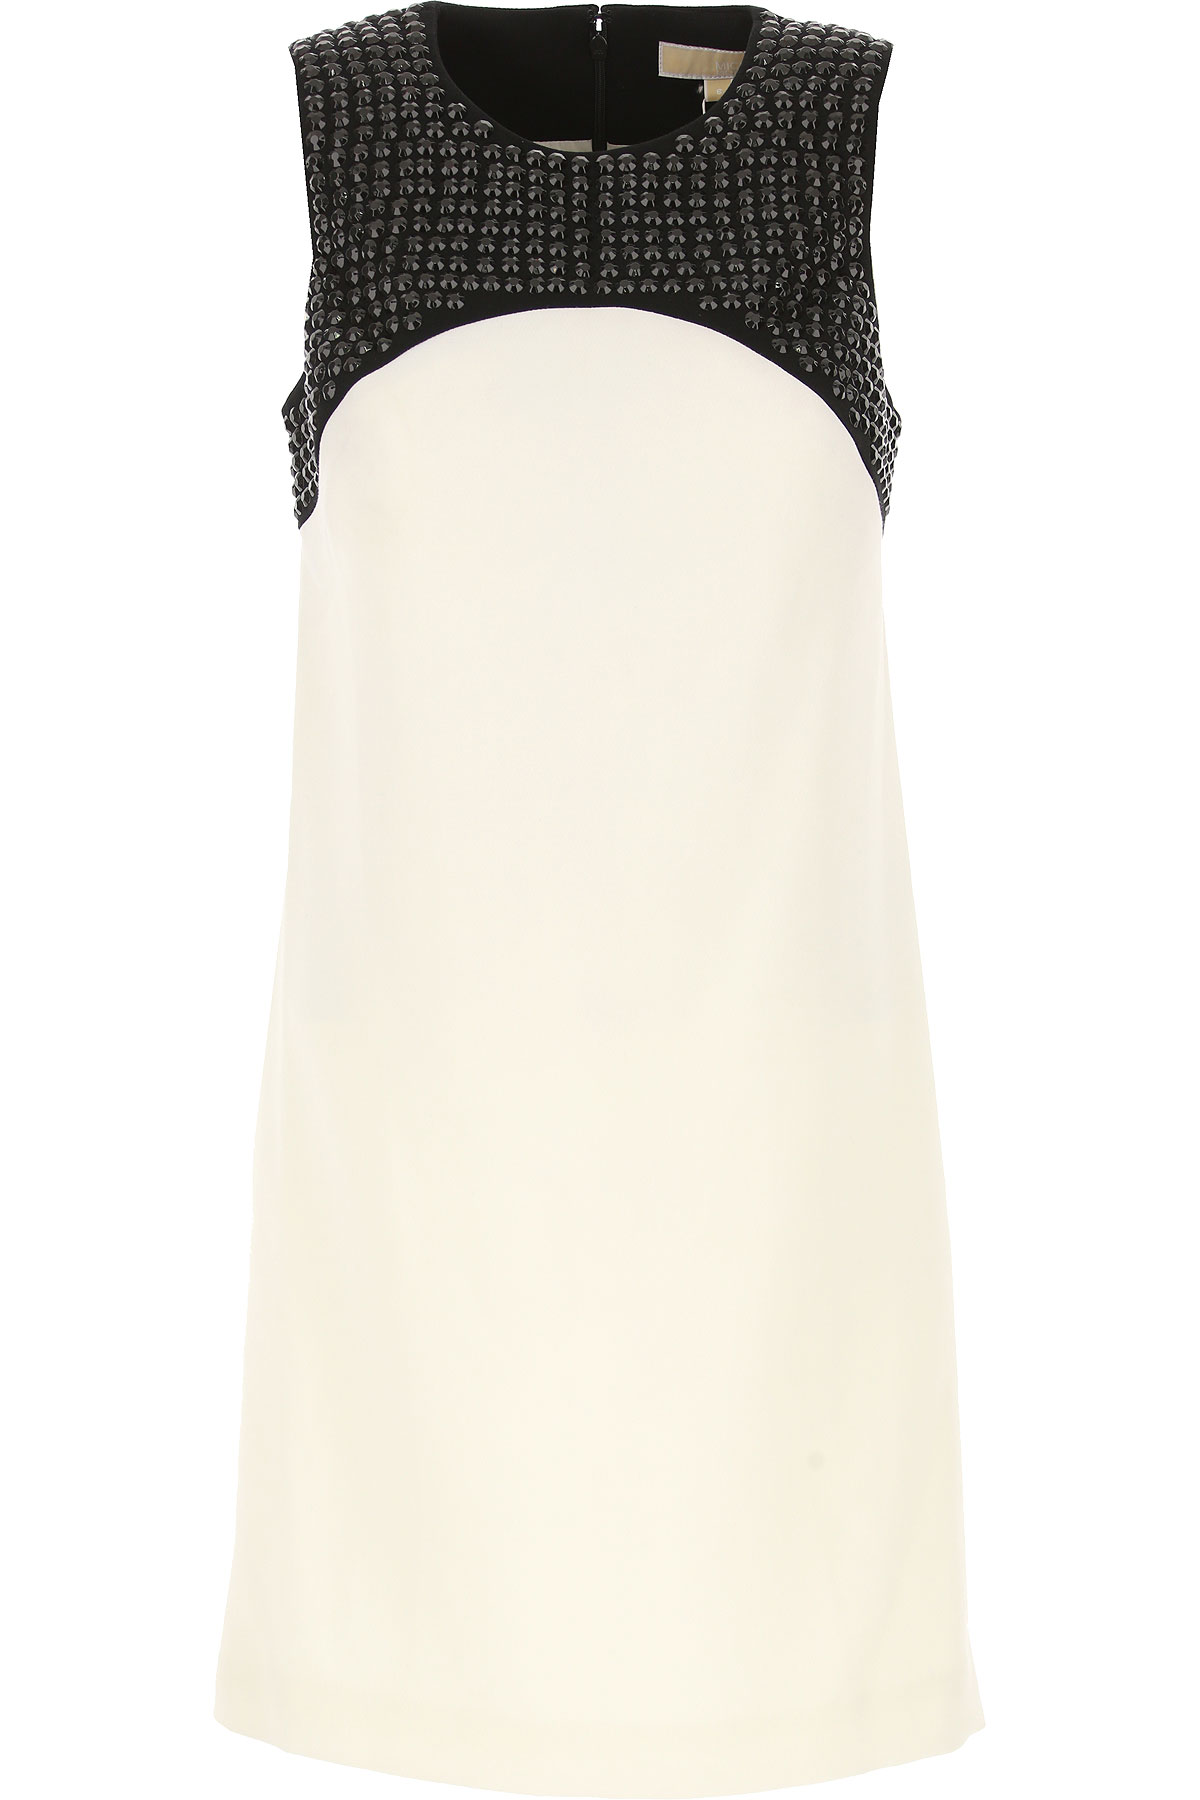 Michael Kors Dress for Women, Evening Cocktail Party On Sale in Outlet, Cream, polyester, 2019, IT 44 - US 6 - F 40 IT 46 - US 8 - F 42